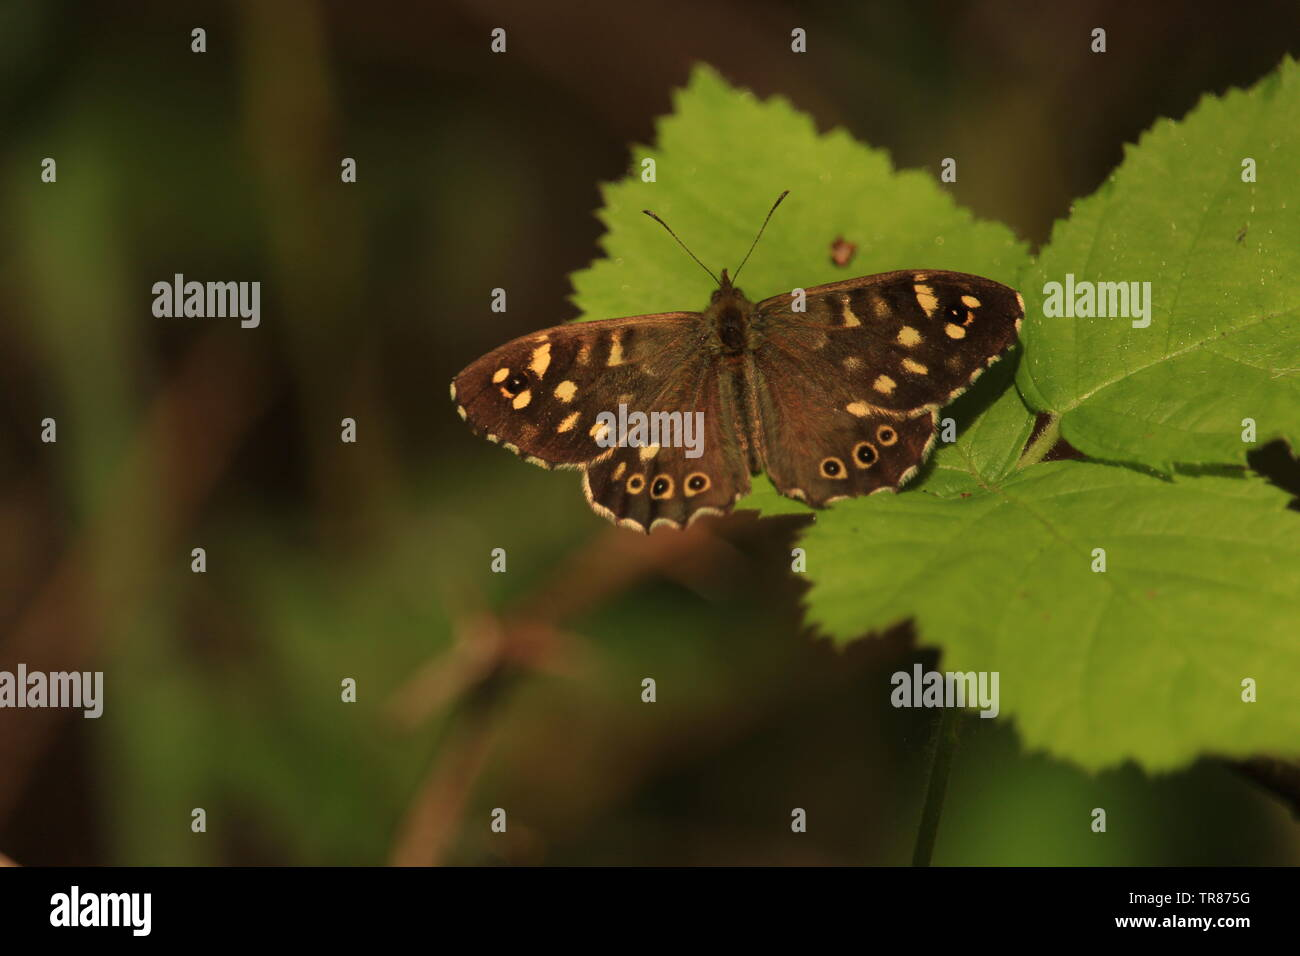 The Speckled Wood Butterfly (Pararge aegeria) has experienced a rise in distribution in contrast with the comparative decline in oth - Stock Image